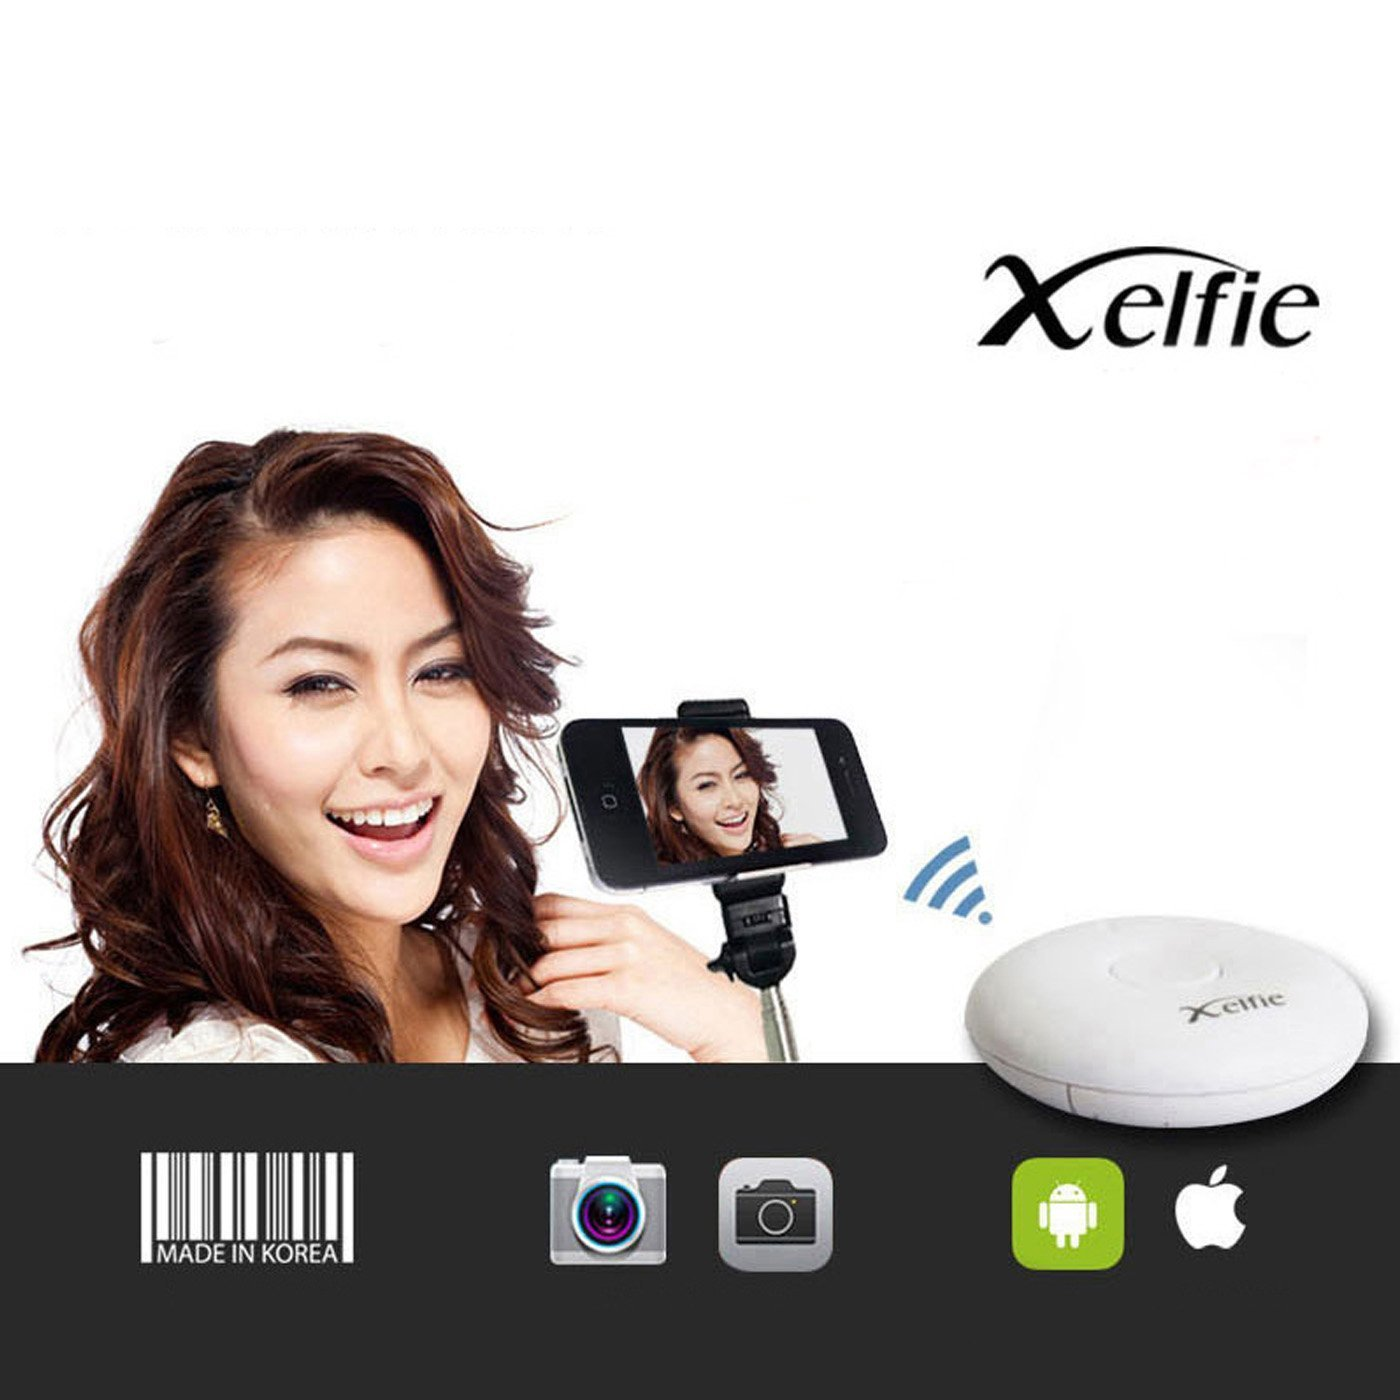 Xelfie Smart Phone Camera Auto-Remote Control Shutter iOS7 Android 4.4.2 New